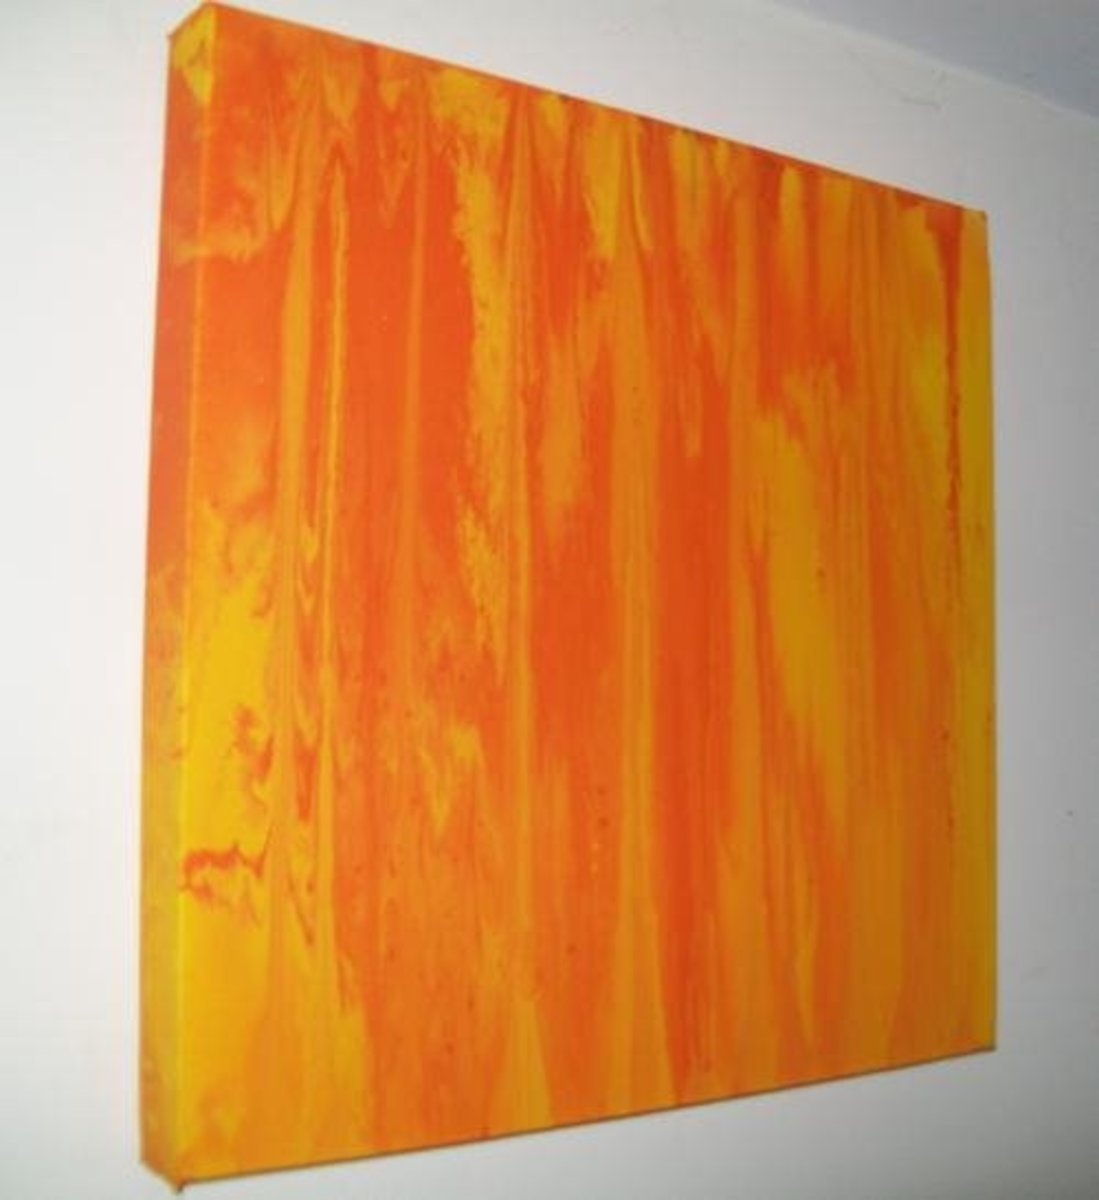 "Orange on Yellow April 30th 2013. Time taken about one hour. Size of canvas 16"" x 16""."